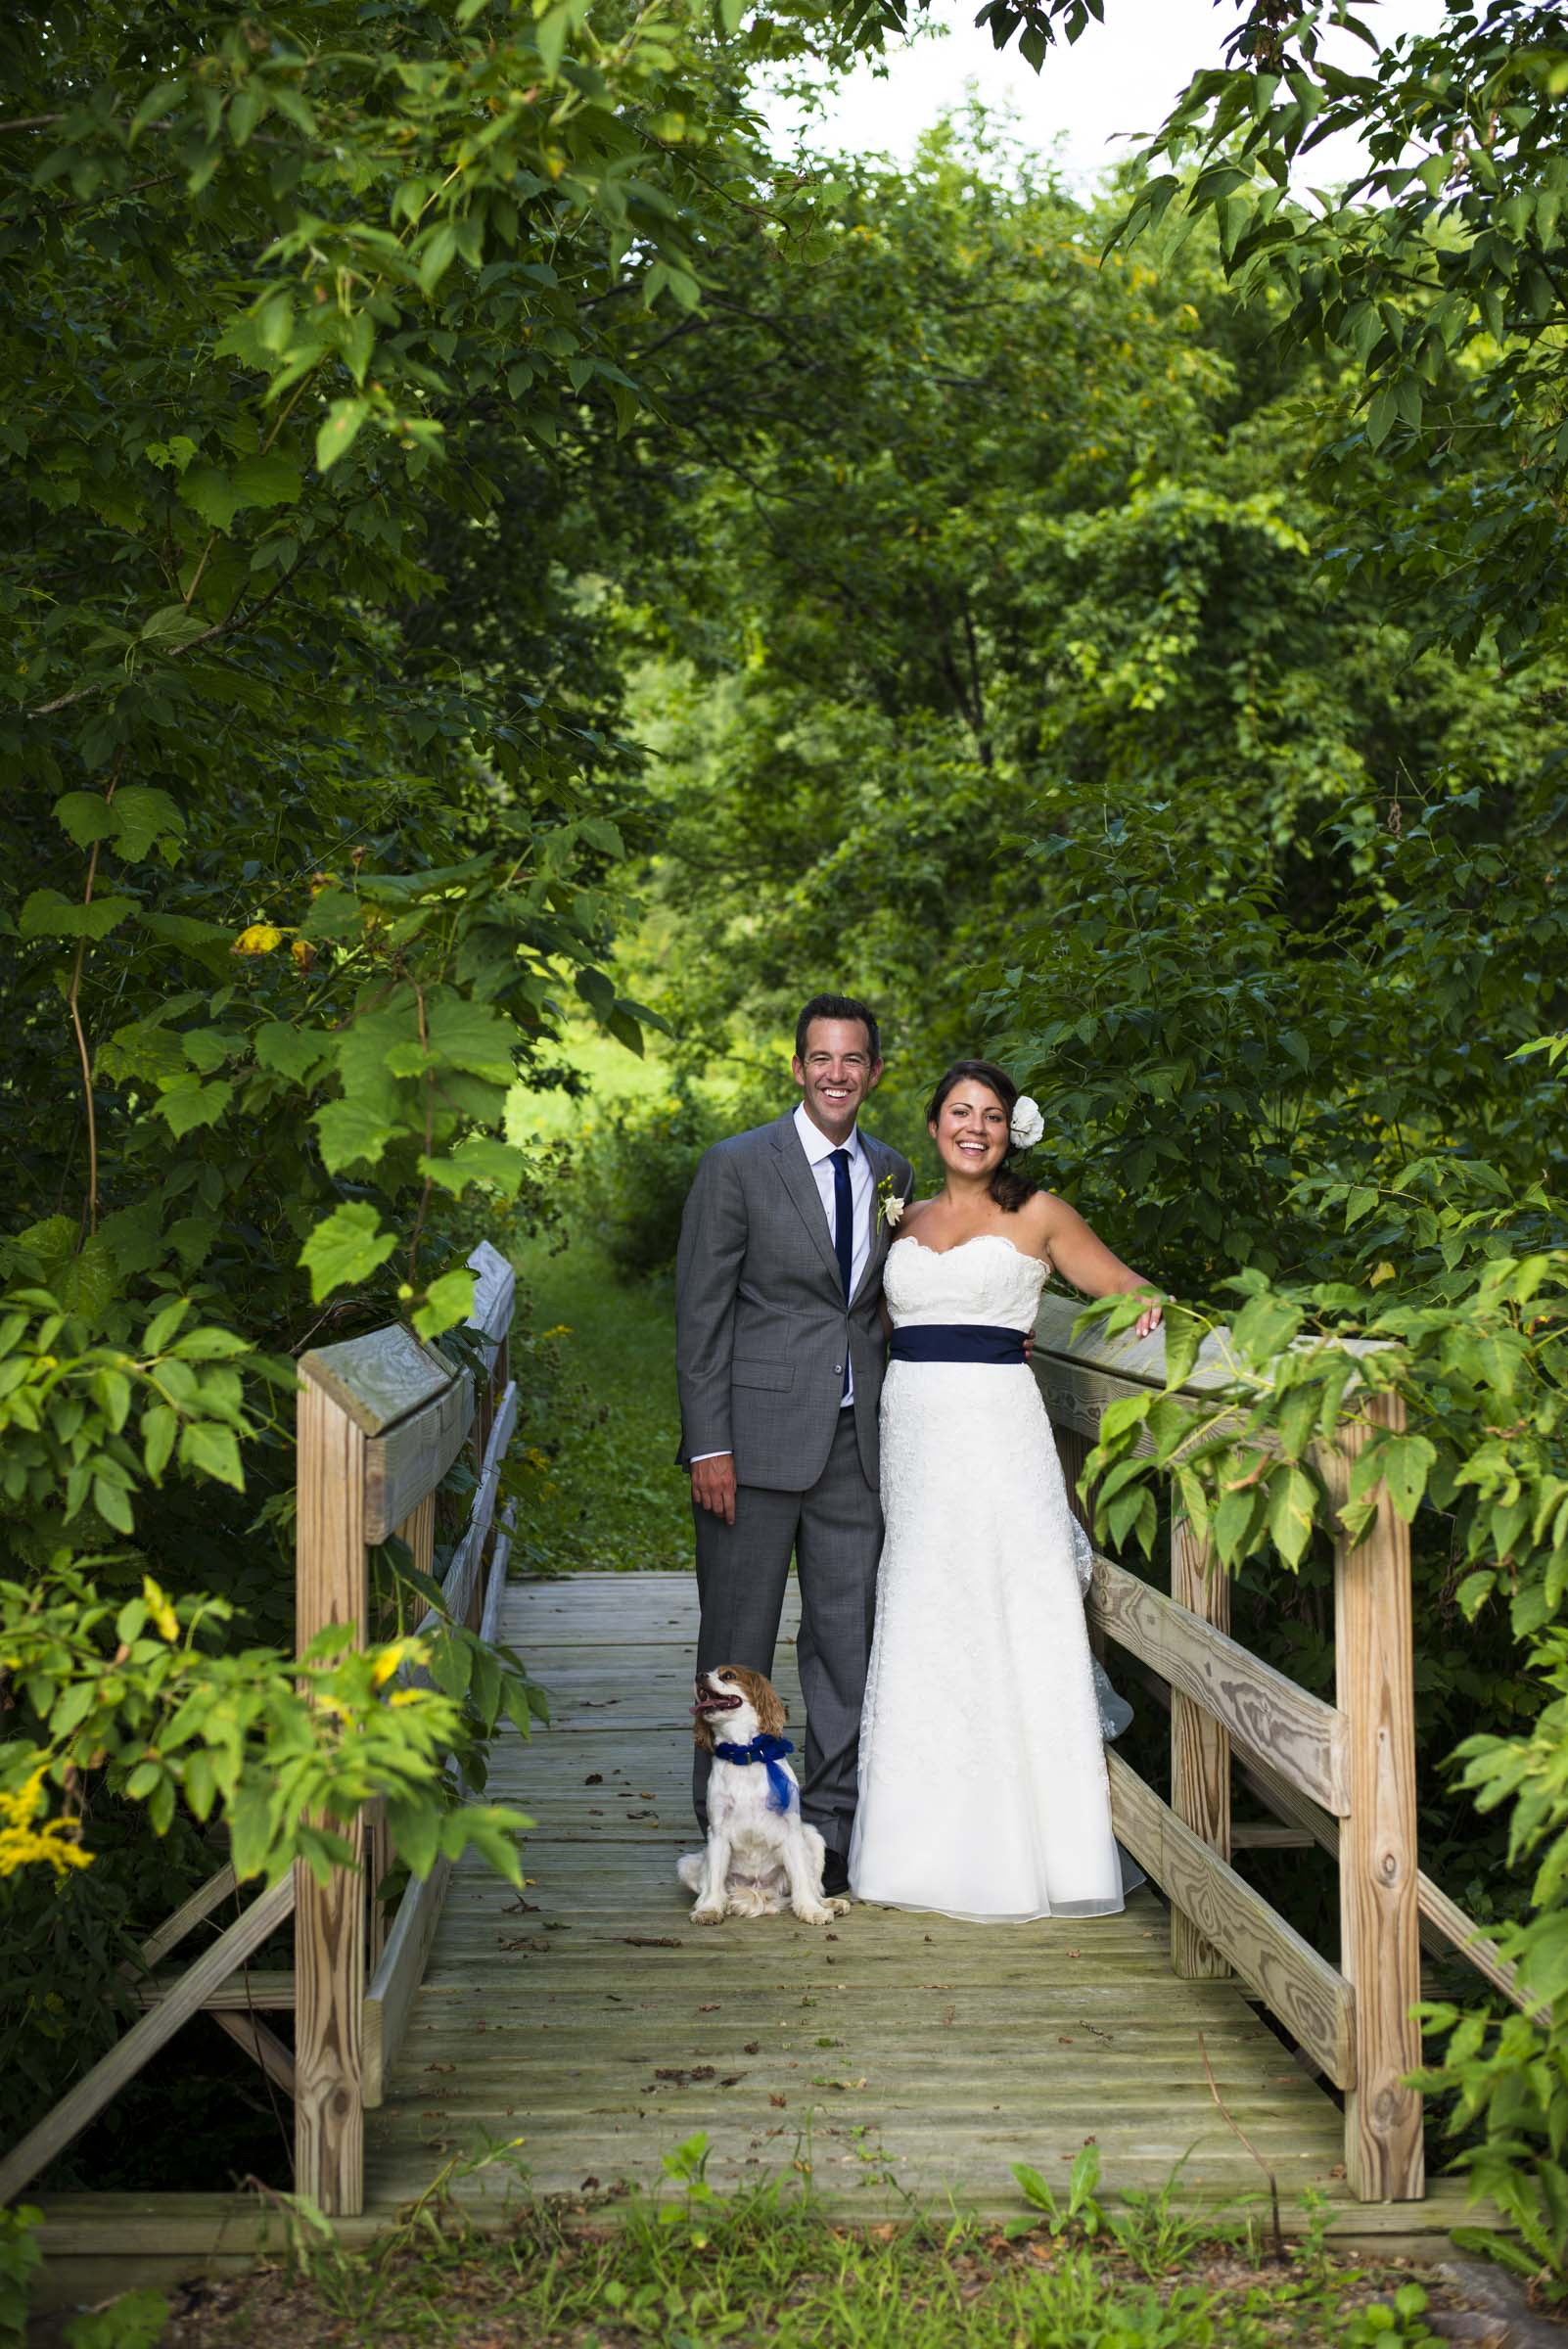 08232014-Chris&VanessaWedding-JuliaLuckettPhotography-308